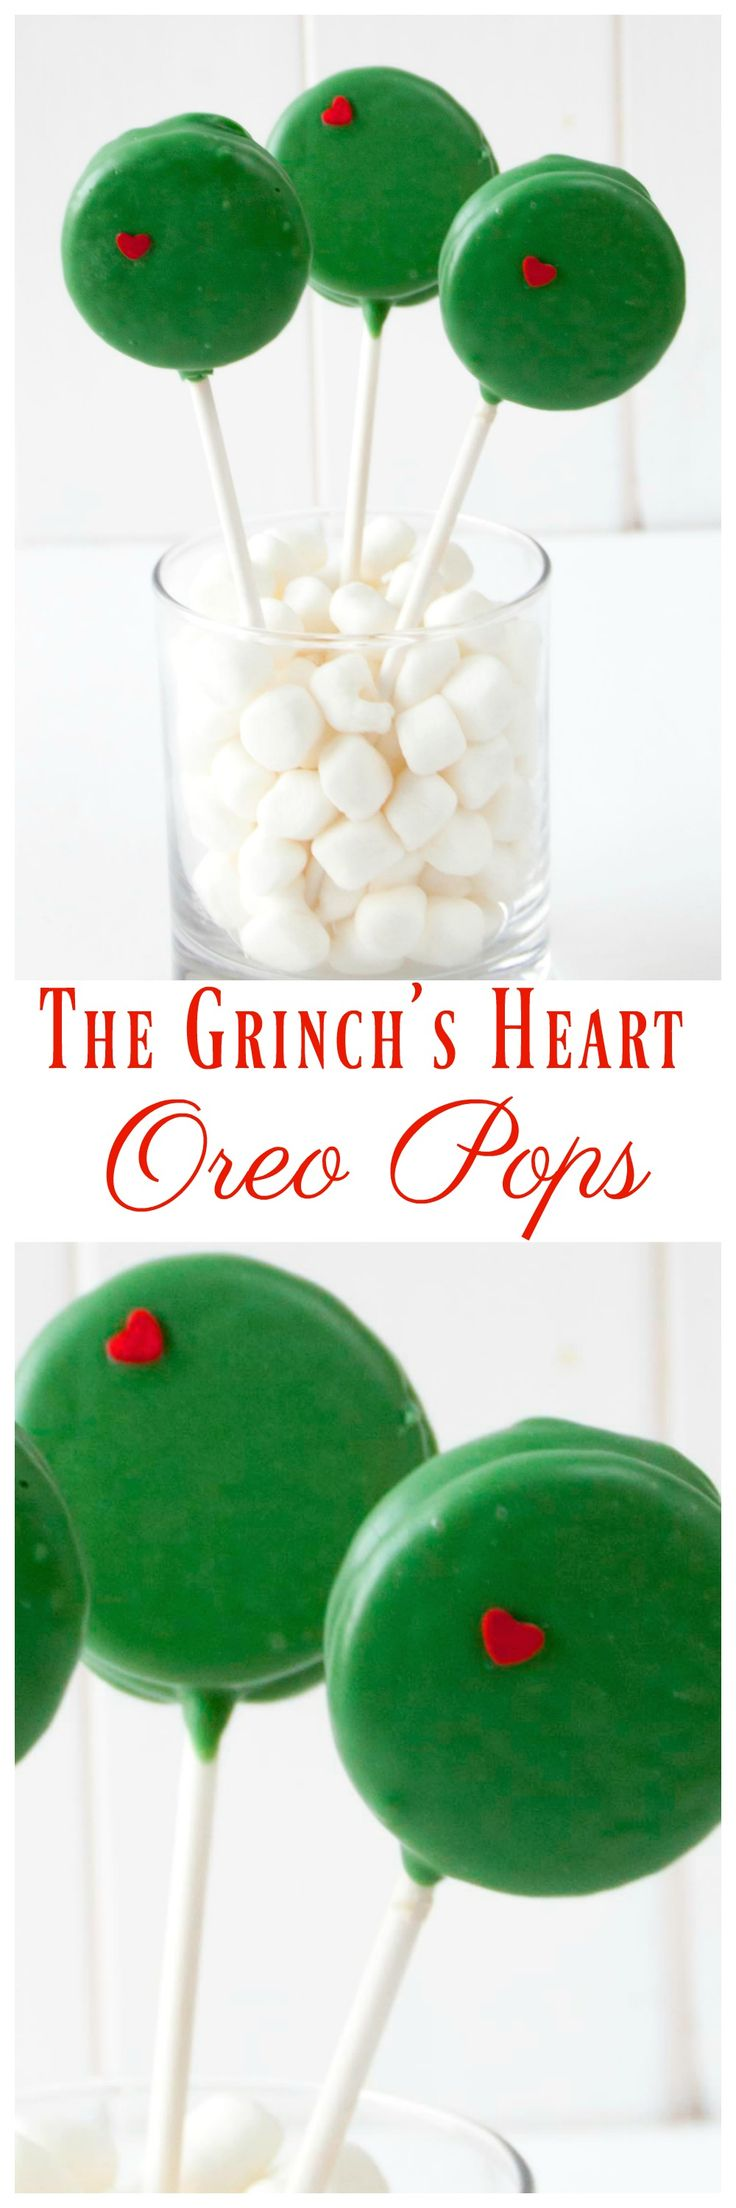 How to make The Grinch Oreo Pops. Step by step directions on how to make oreo pops from the Grinch Who Stole Christmas Movie.